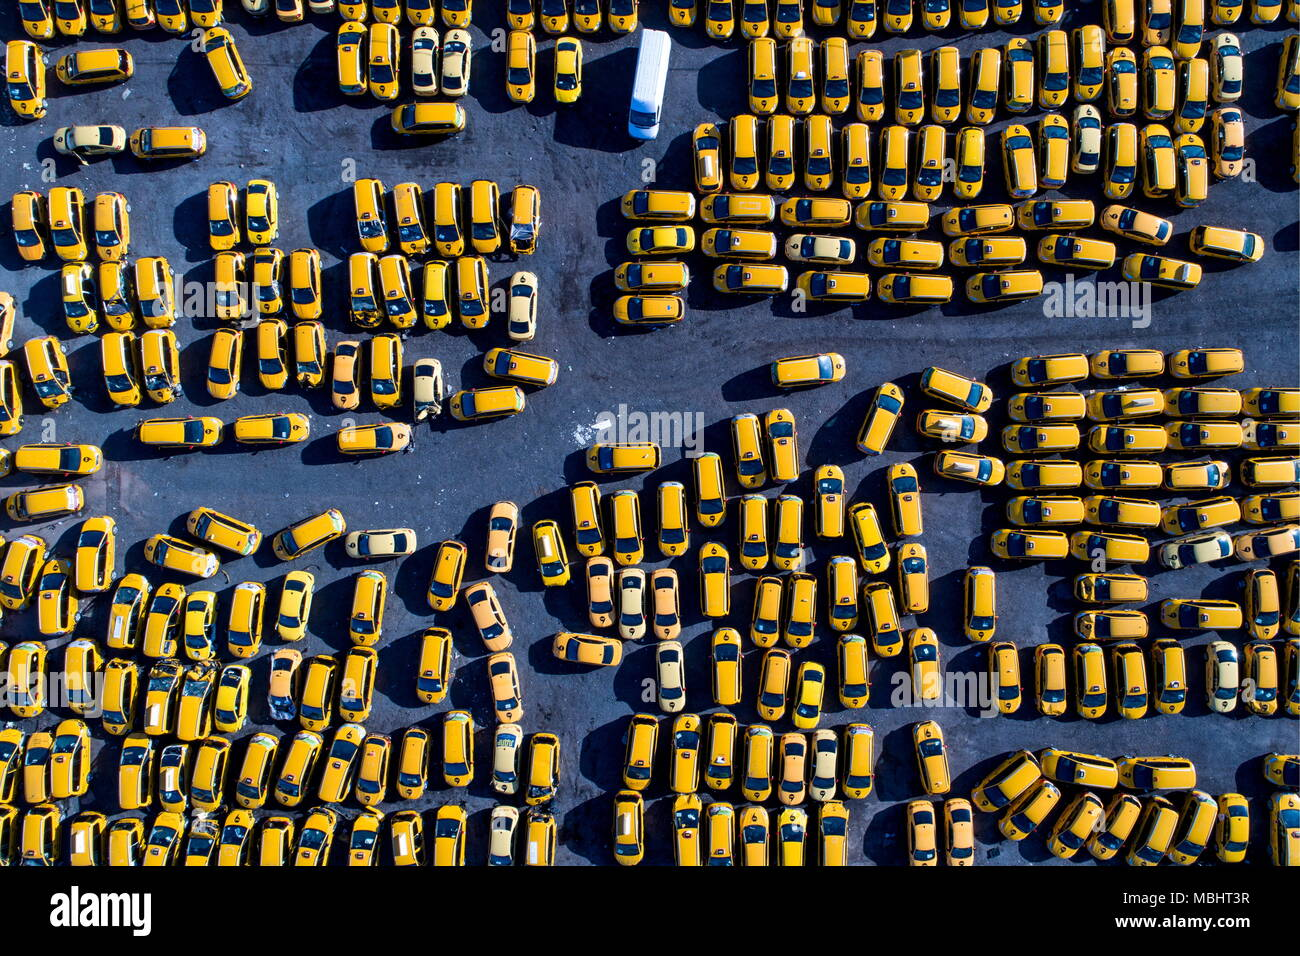 Moscow, Russia. 11th Apr, 2018. MOSCOW, RUSSIA - APRIL 11, 2018: An aerial view of a parking space for Yandex Taxi taxicabs. Some Russian taxi drivers have announced a nationwide boycott of mobility companies Gett, Uber and YandexTaxi over increased commission rates. Sergei Bobylev/TASS Credit: ITAR-TASS News Agency/Alamy Live News - Stock Image